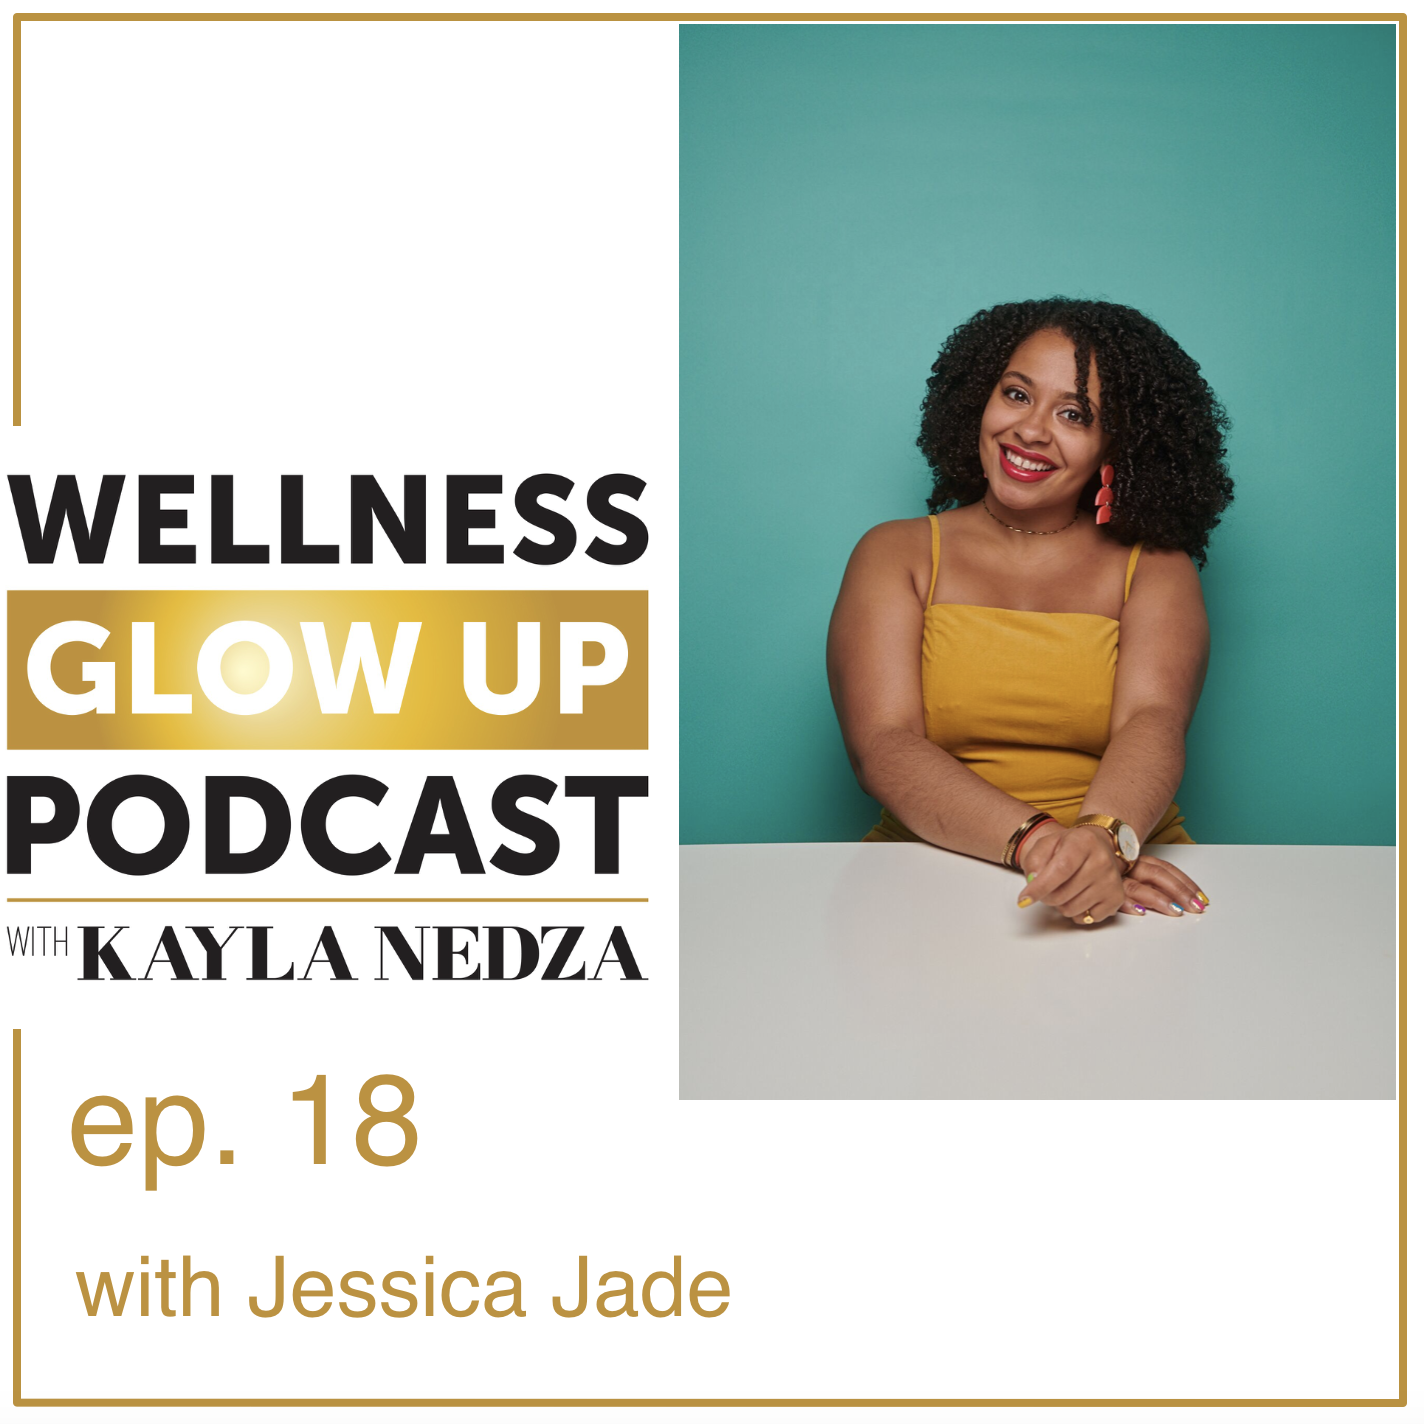 Wellness Glow Up Podcast - In this episode, Kayla talks to Jessica Jade, wellness coach, speaker, and writer.Jessica Jade empowers women to carve time for self-care that aligns with their feminine health! She empowerswomen of colorto carve time for self-care and embrace their feminine health. Lastly, by following in the footsteps of generations of women in her family, she crafts an organic skincare line, SunKiss Organics,that is rooted in tradition & nourishing for all!